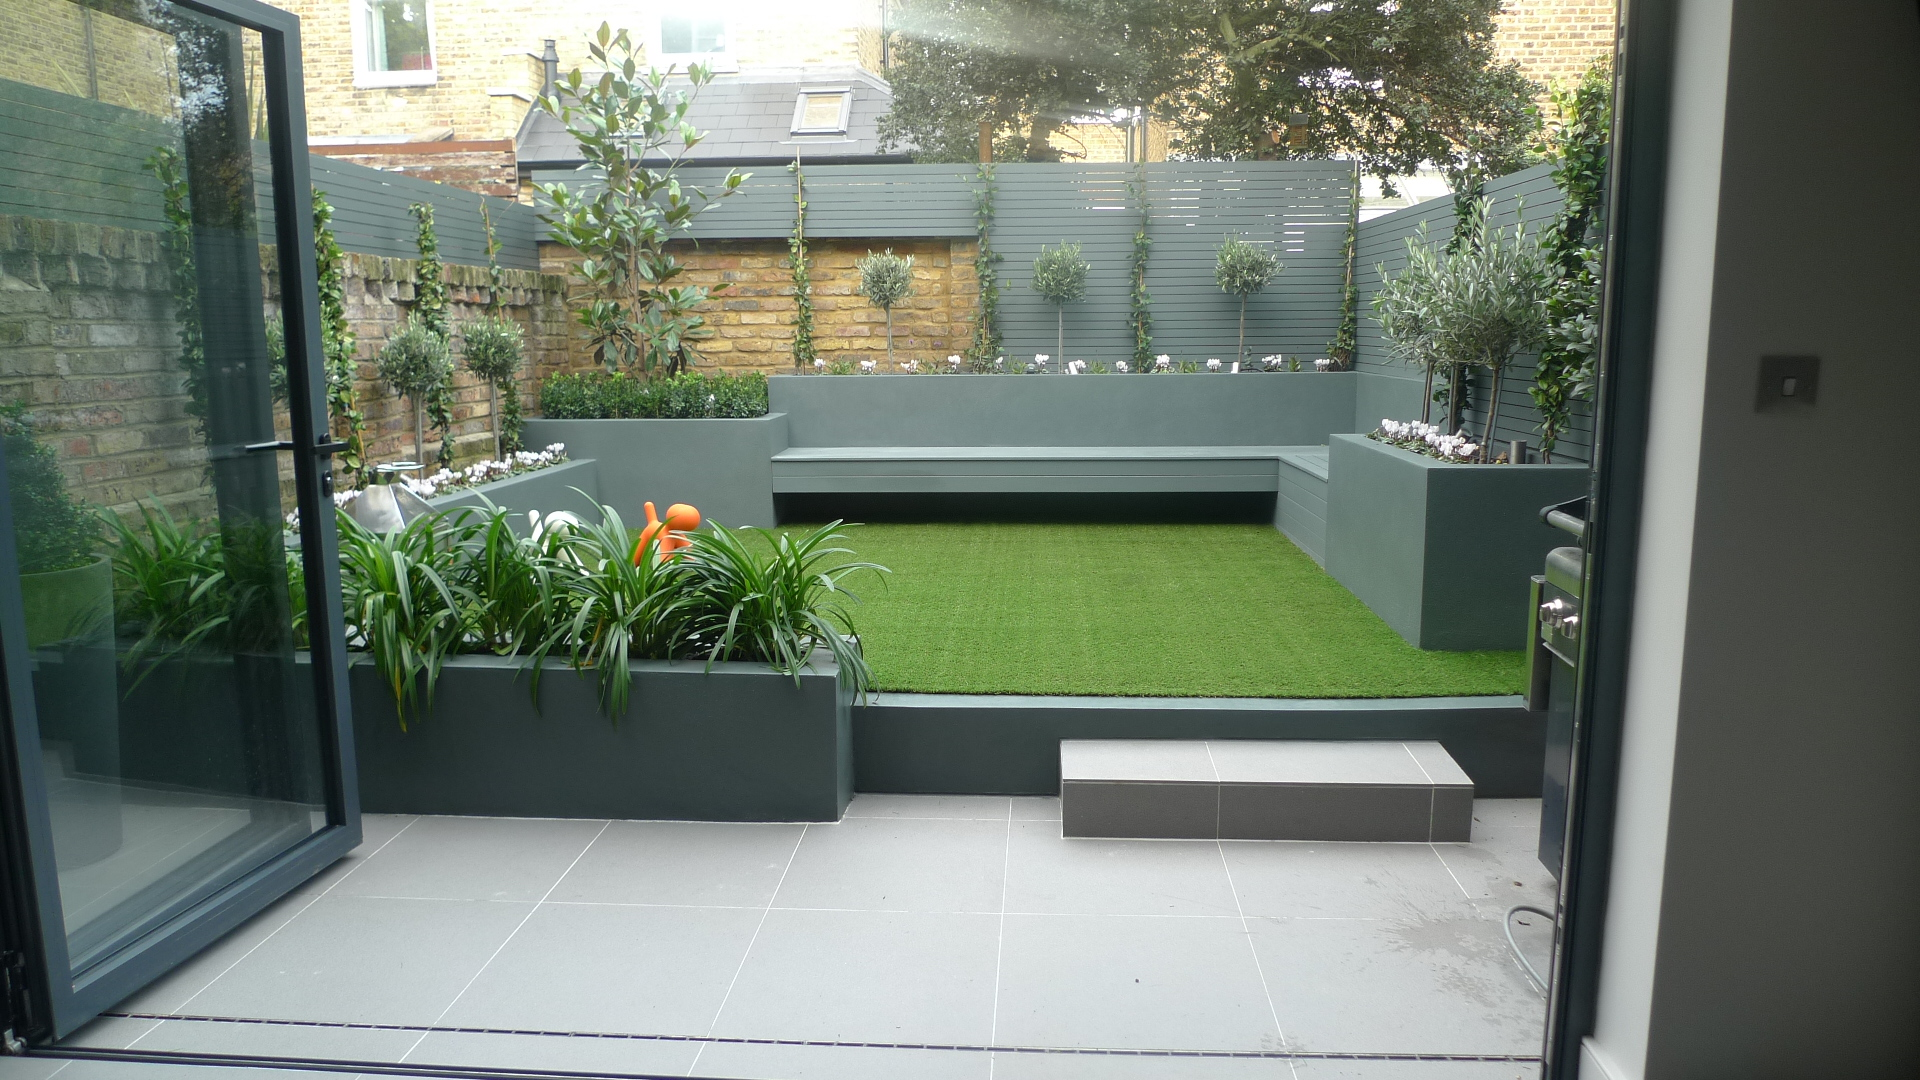 London garden design garden design for Modern low maintenance garden ideas